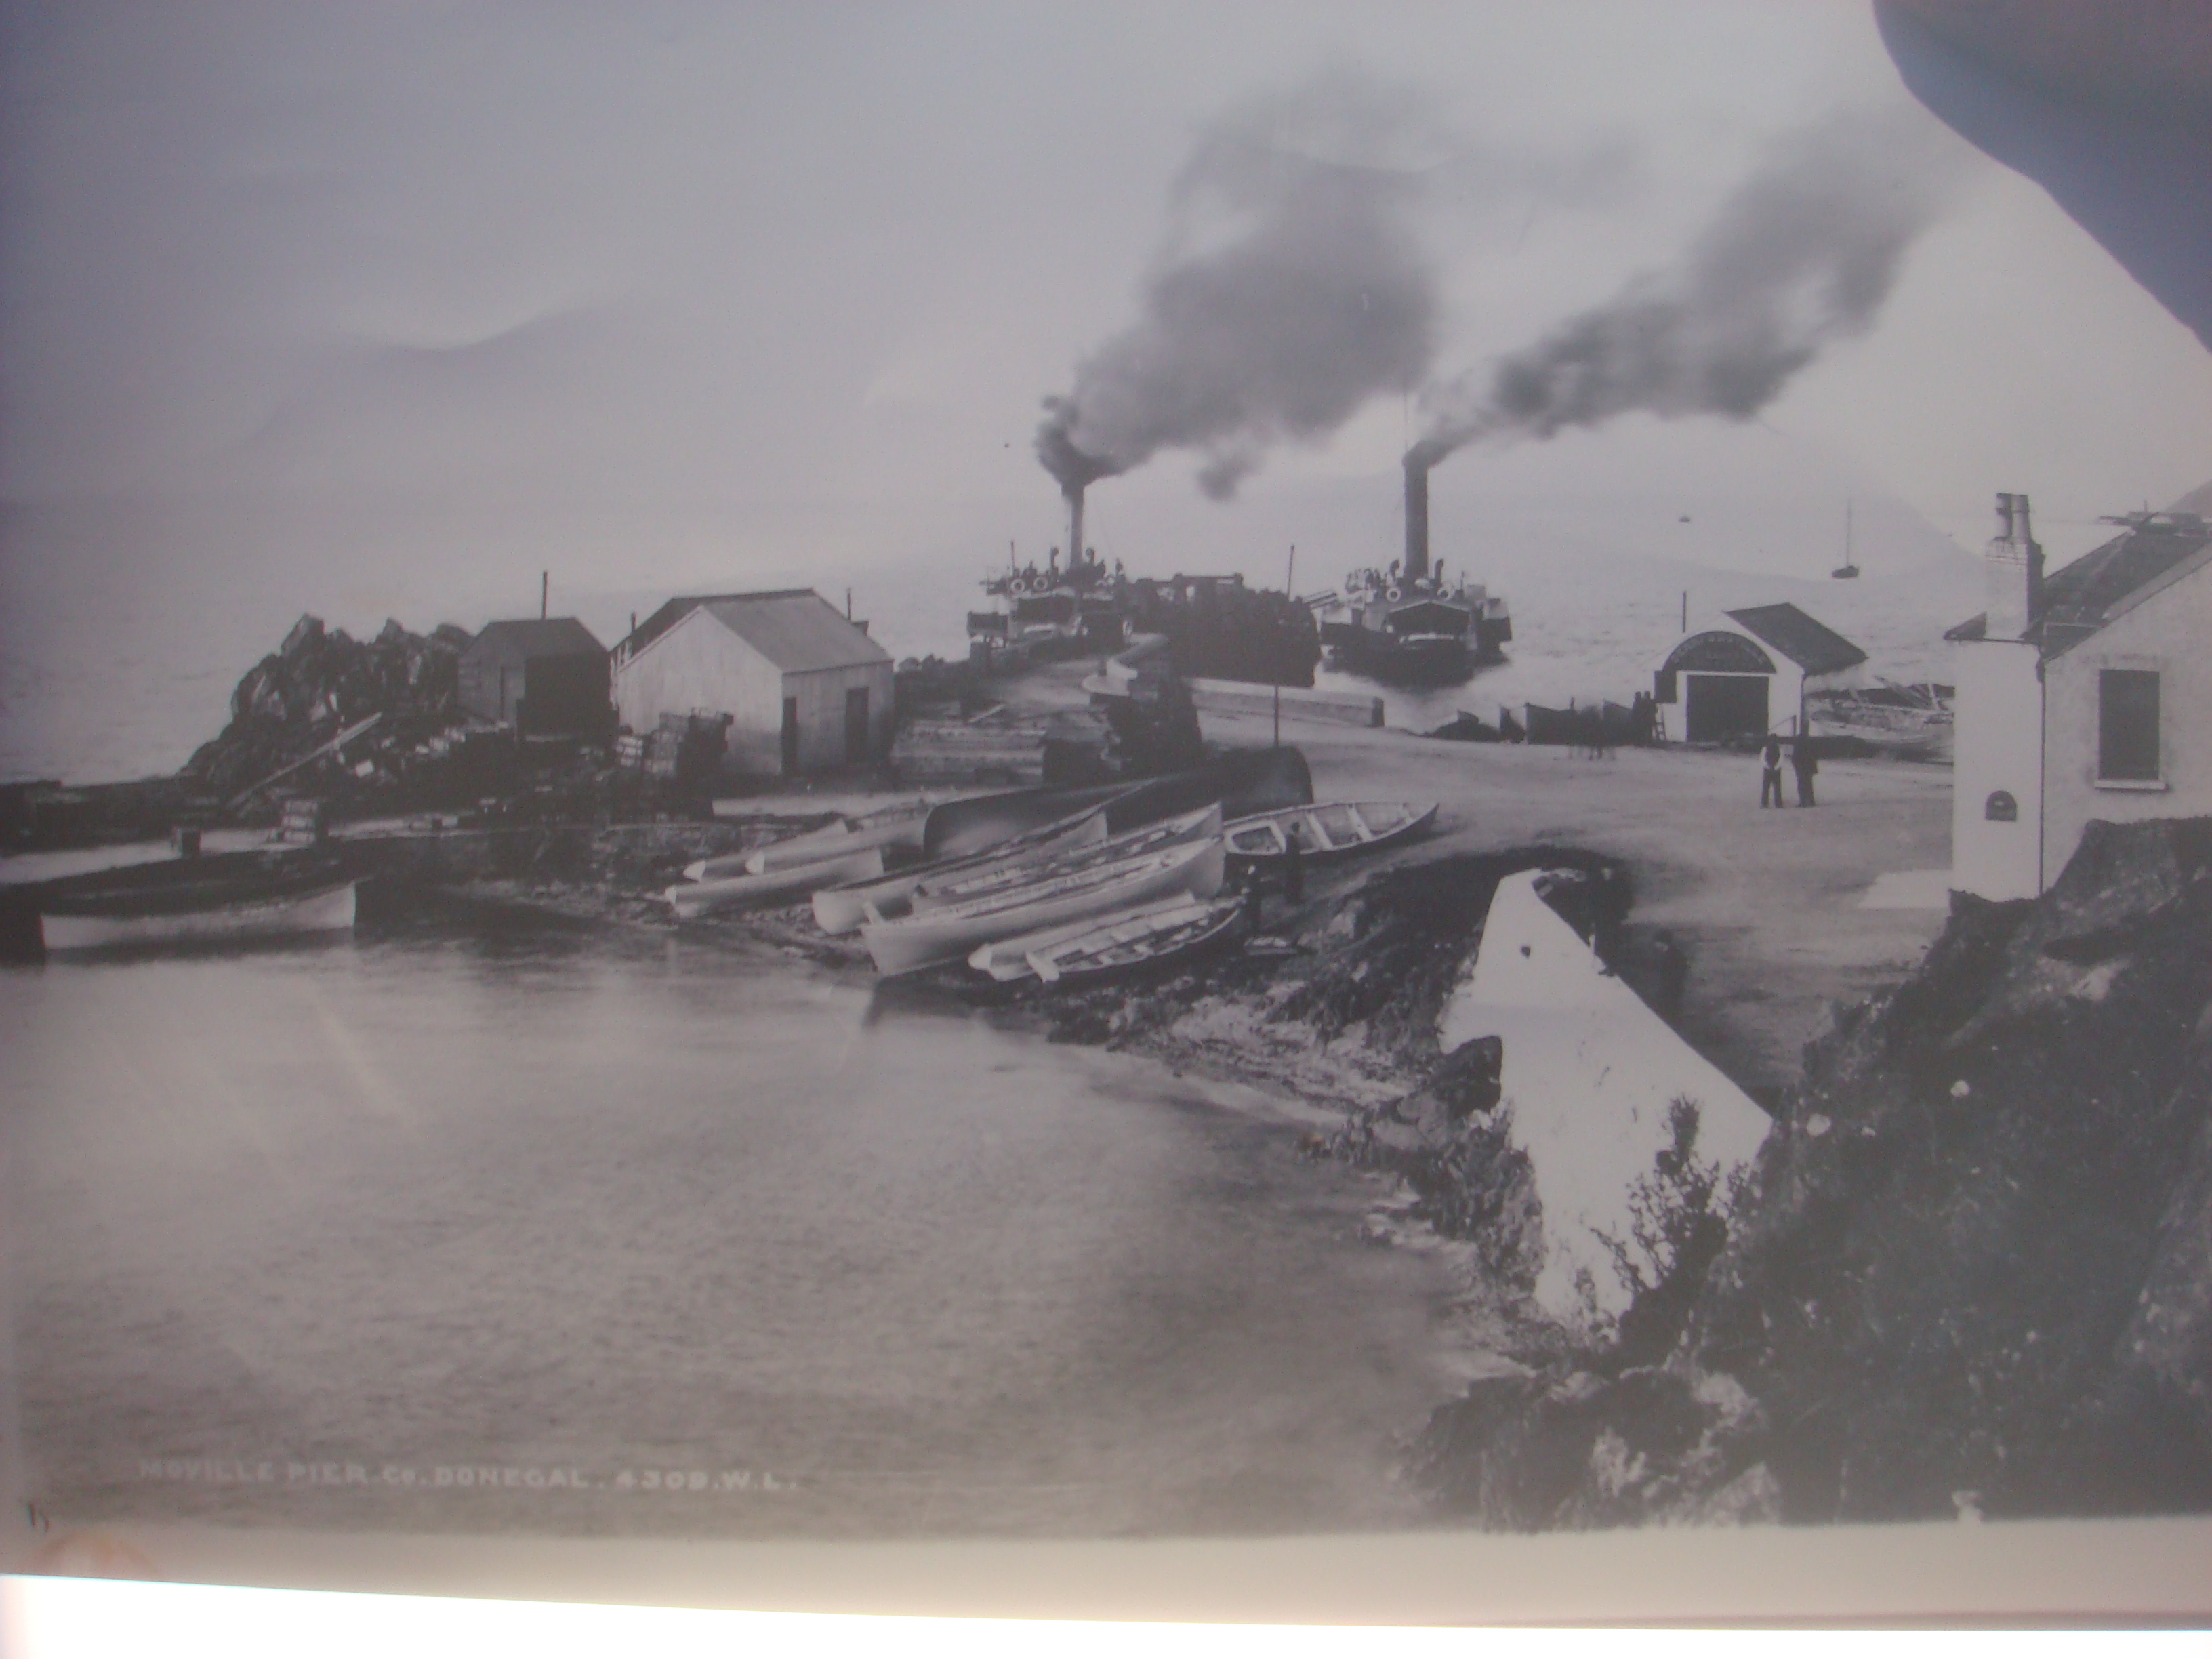 Moville in the olden days